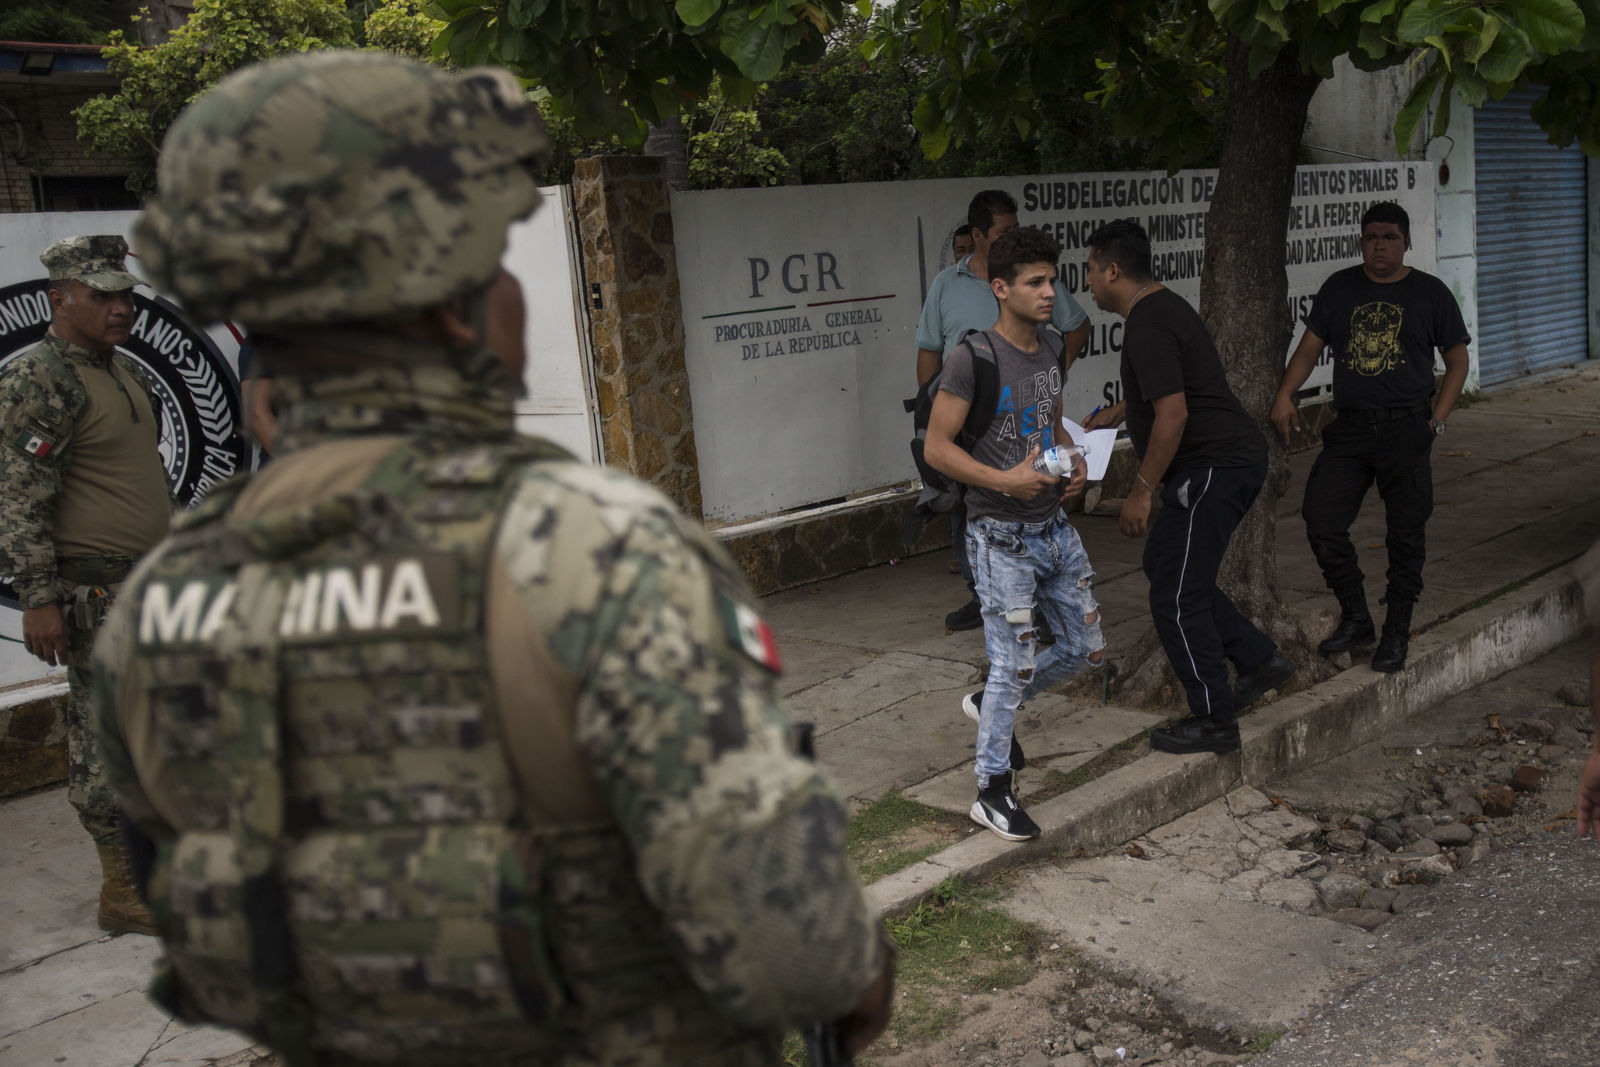 A man without legal permission to be in Mexico leaves an office of the Attorney General before being sent to Tapachula in an immigration van, as members of the National Guard stand watch in Arriaga, Mexico, Sunday, June 23, 2019. Mexico has completed its deployment of 6,000 National Guard agents to help control the flow of migrants headed toward the U.S. and filled  immigration agency posts to regulate border crossings, the government said Friday. (AP Photo/Oliver de Ros)